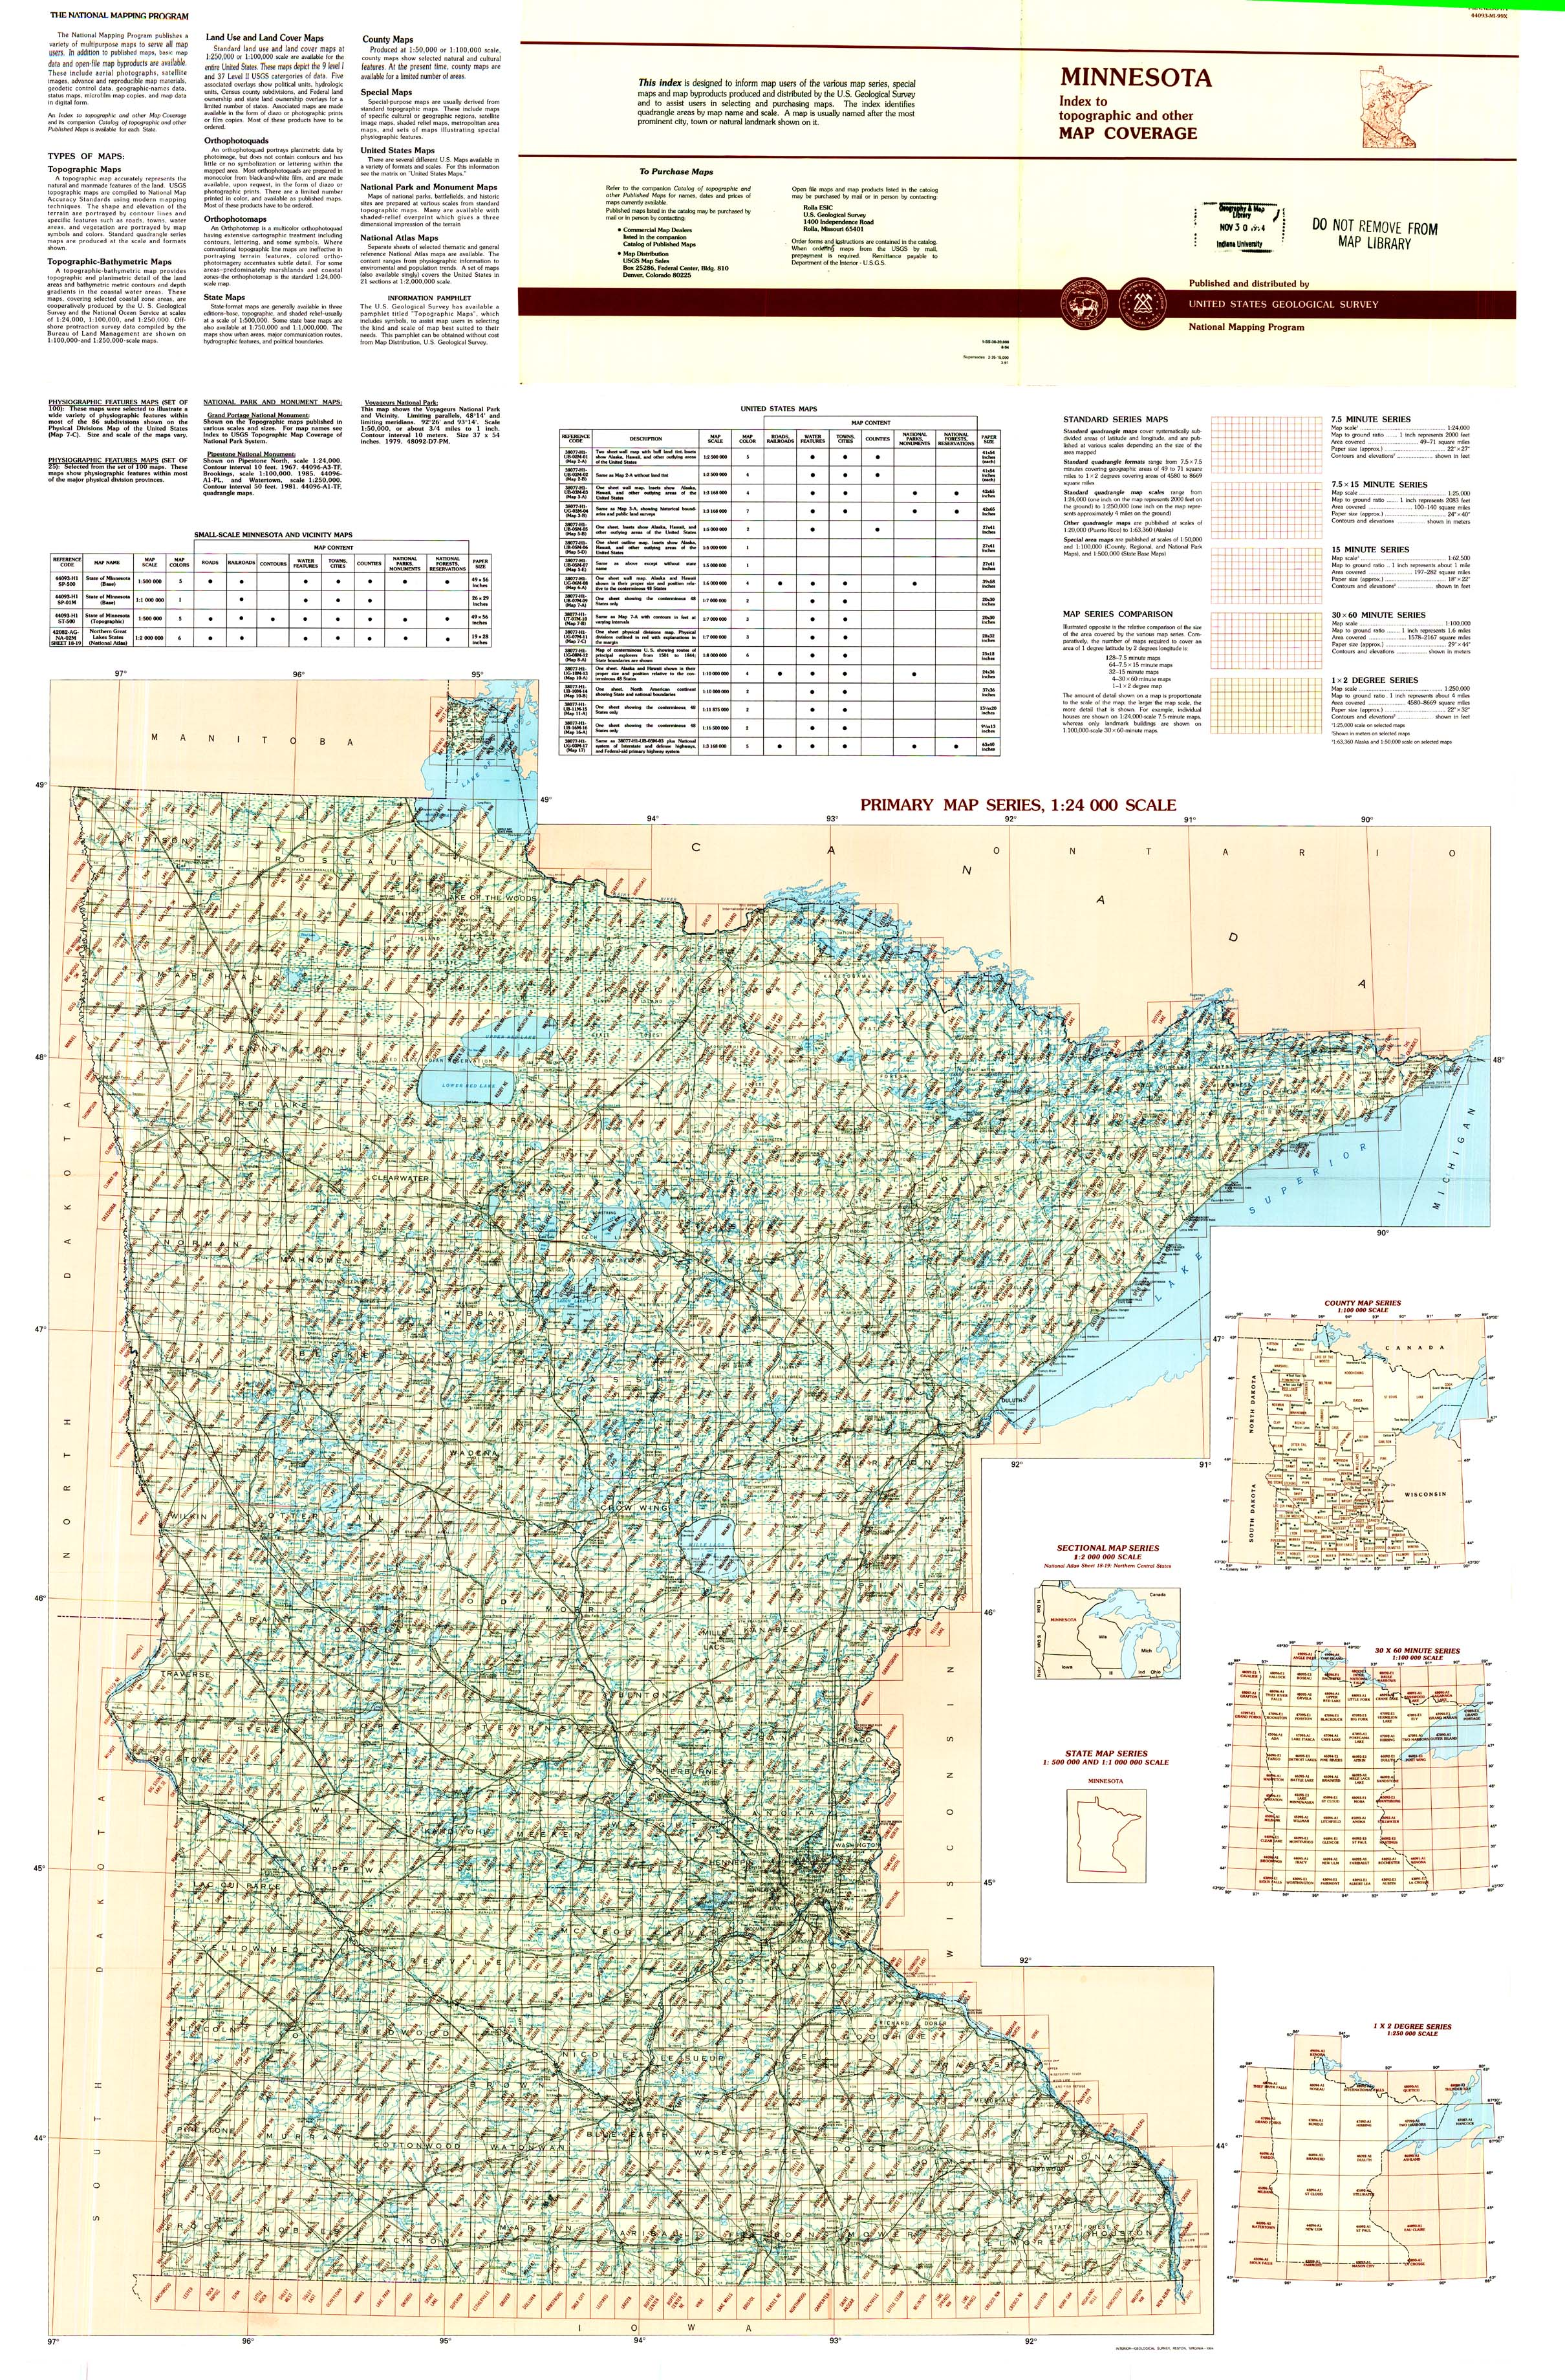 Topographic Maps Indexes: Surrounding States | Indiana University ...